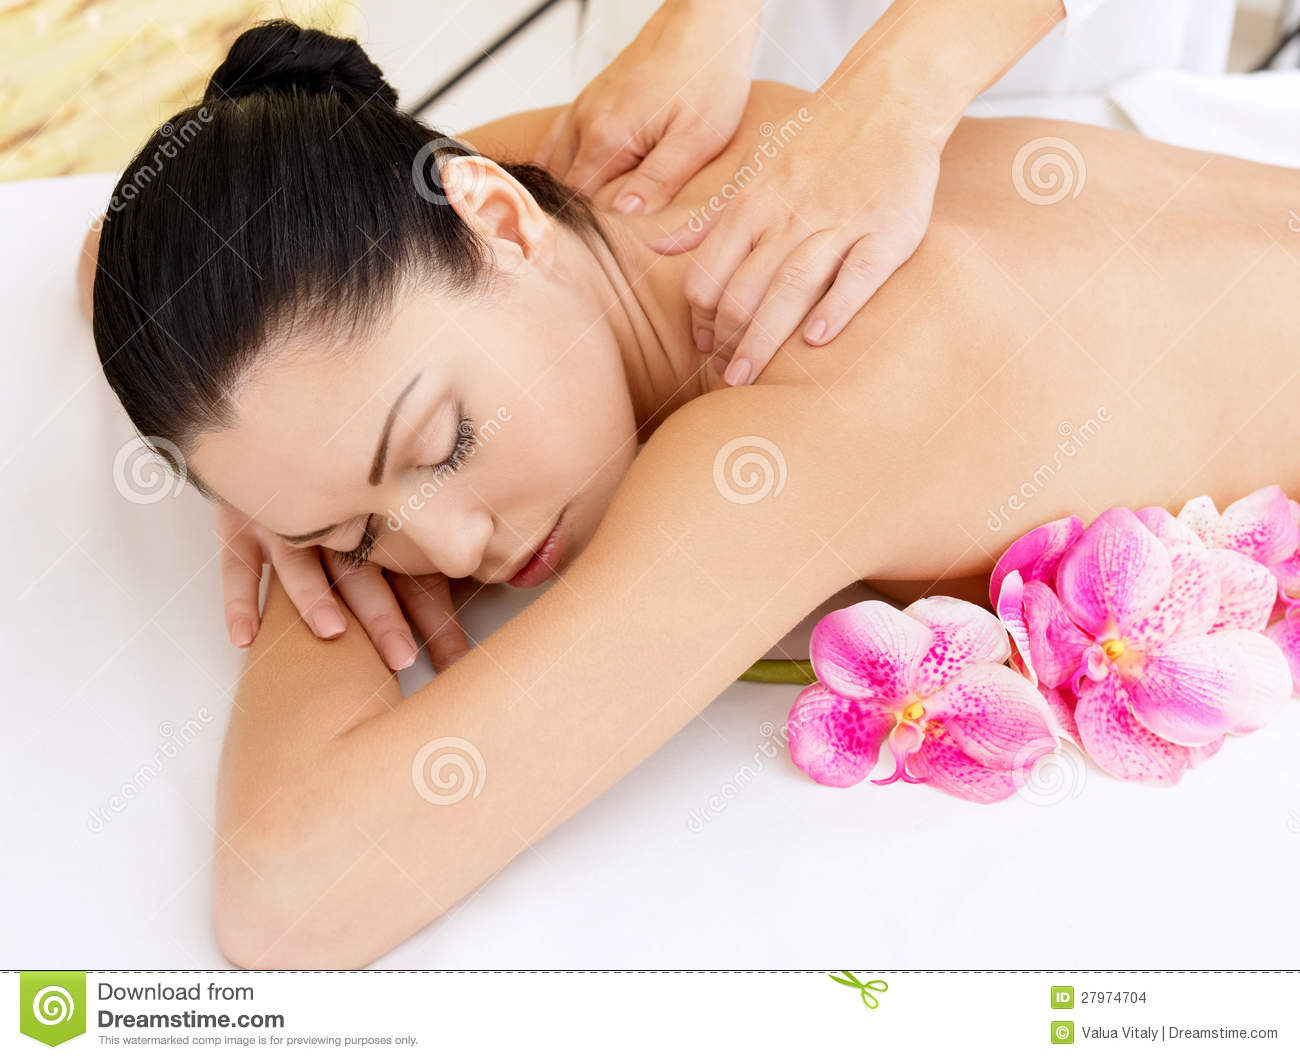 Salon Massage Body Body Woman On Healthy Massage Of Body In Beauty Salon Stock Photo